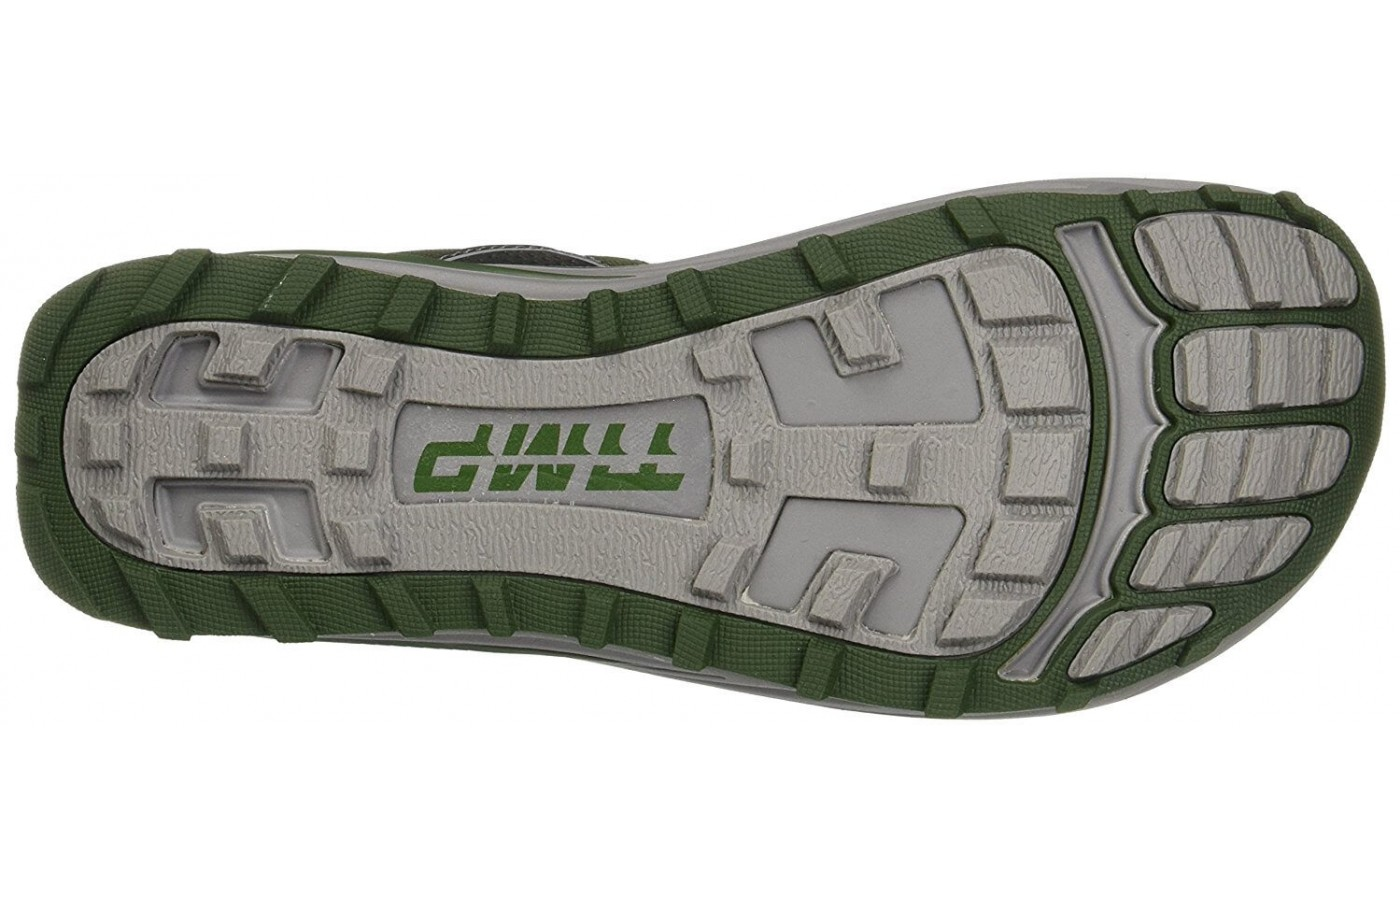 The DuraTread outsole provides extra traction for runners.